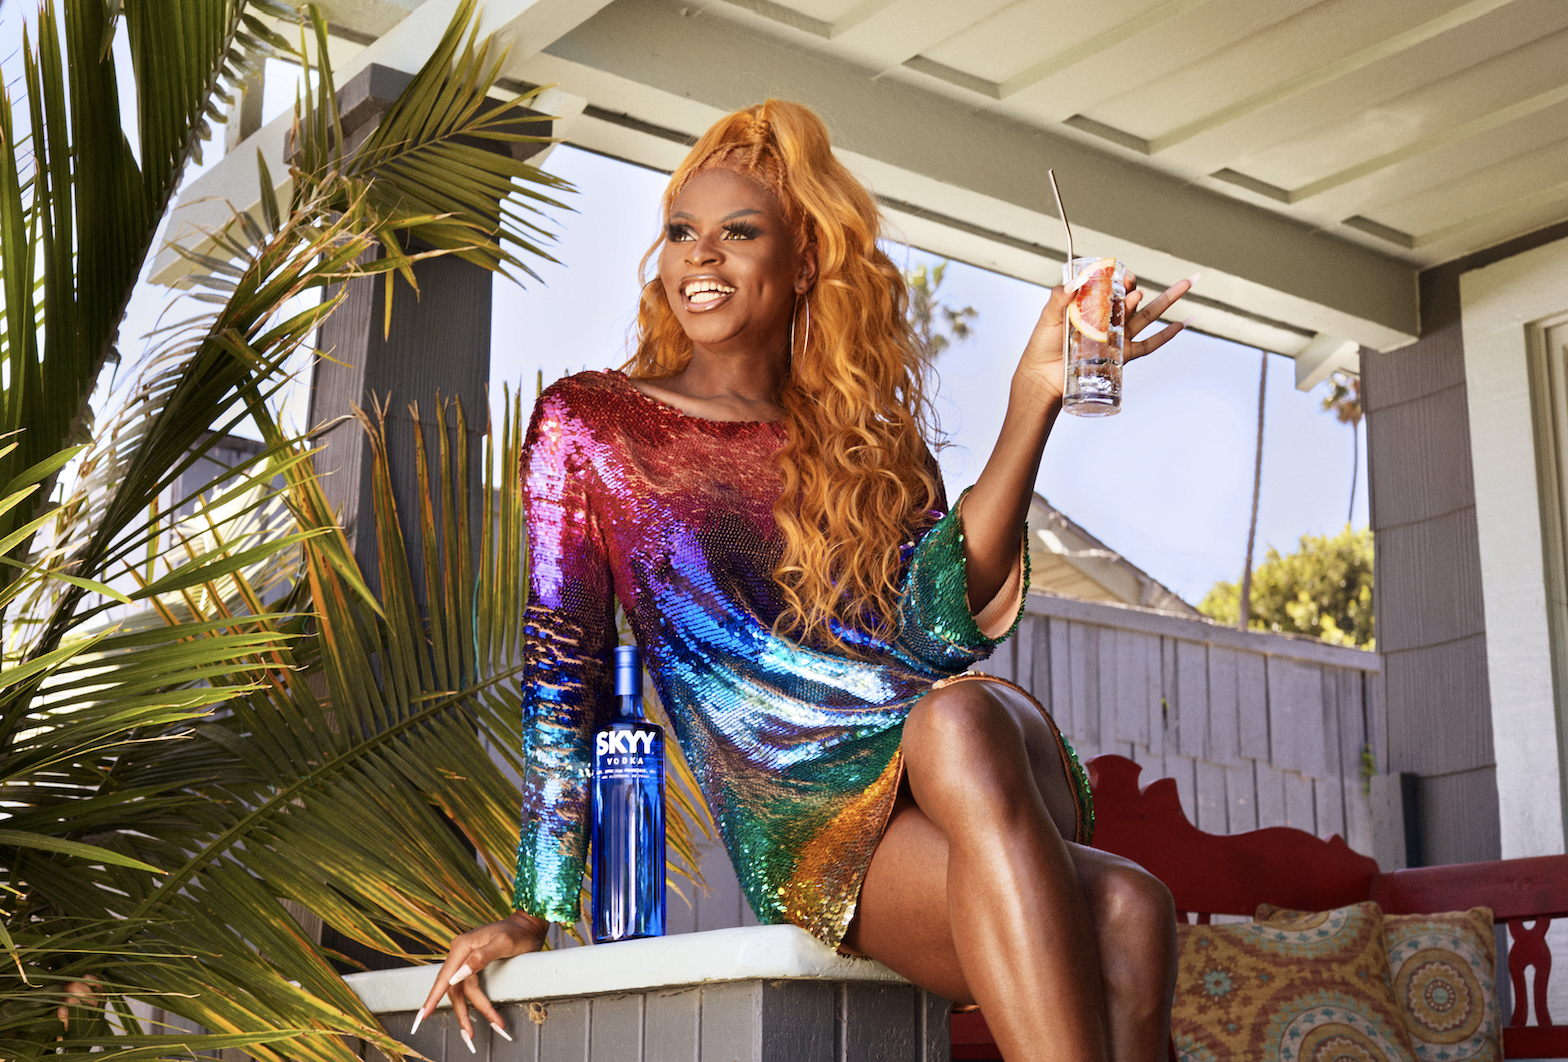 Symone lounging in a multicolored short sequined dress while sipping a glass of Skyy vodka